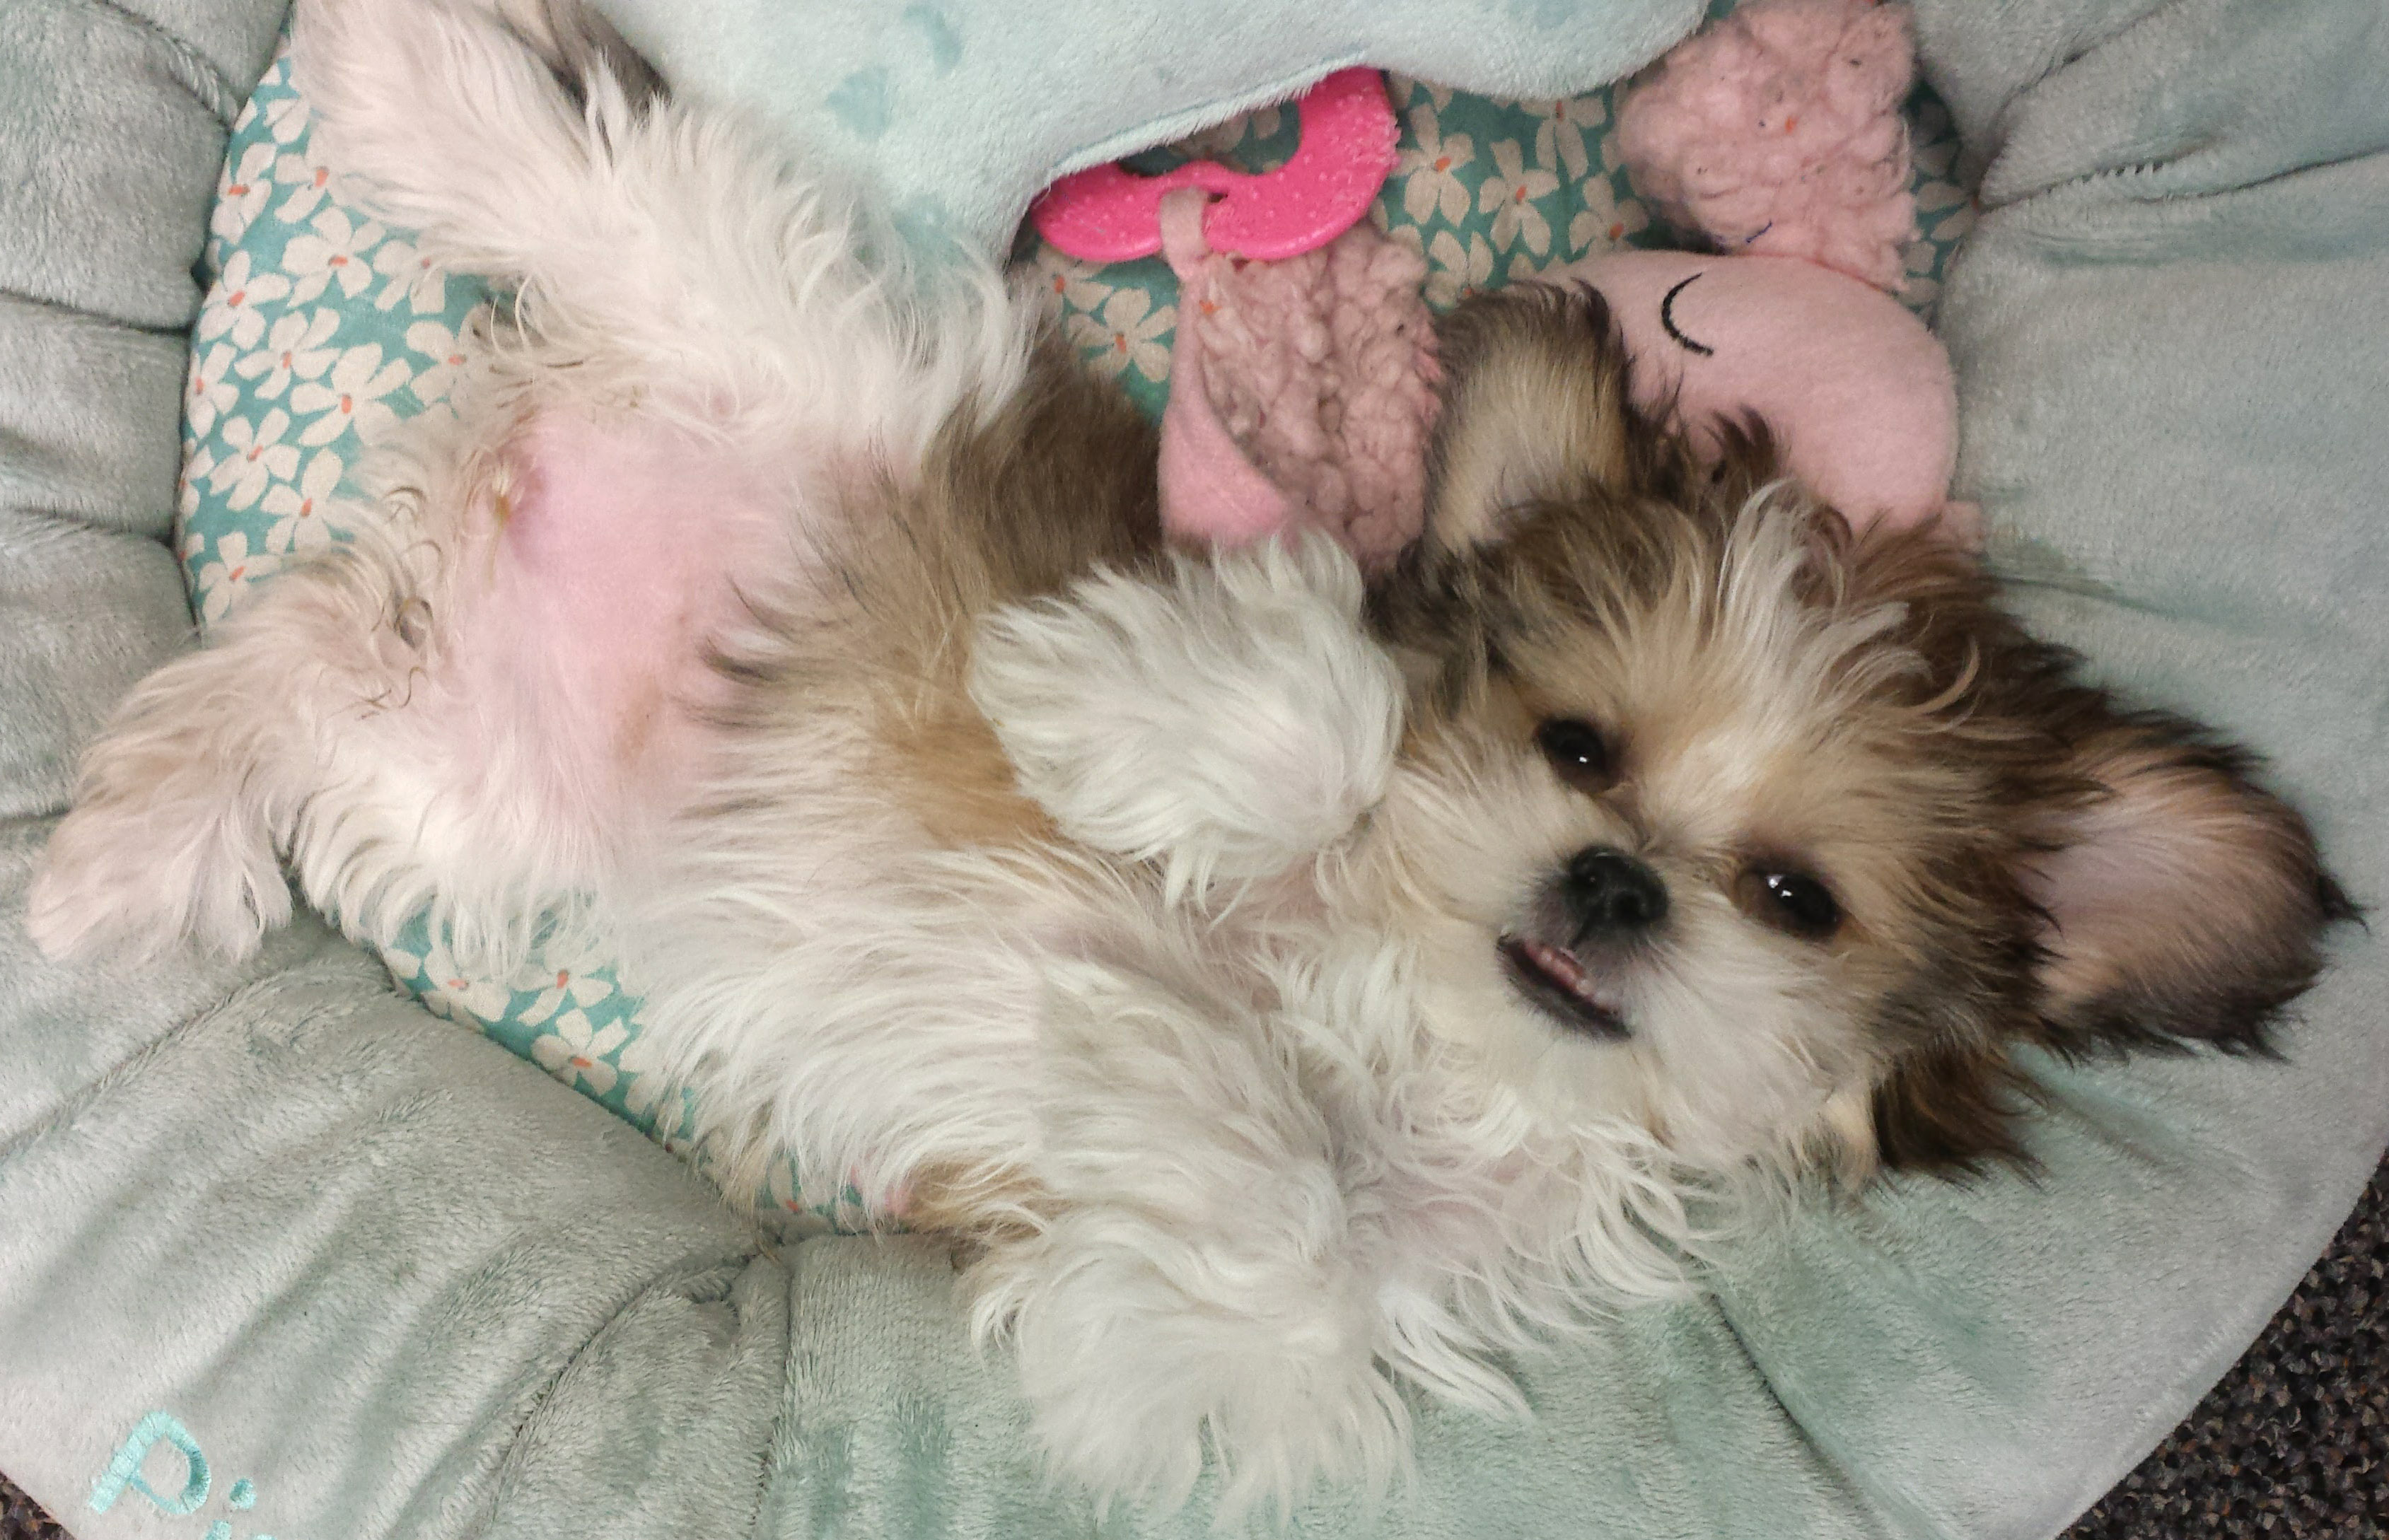 How To Care For Your New Mi Ki Puppy